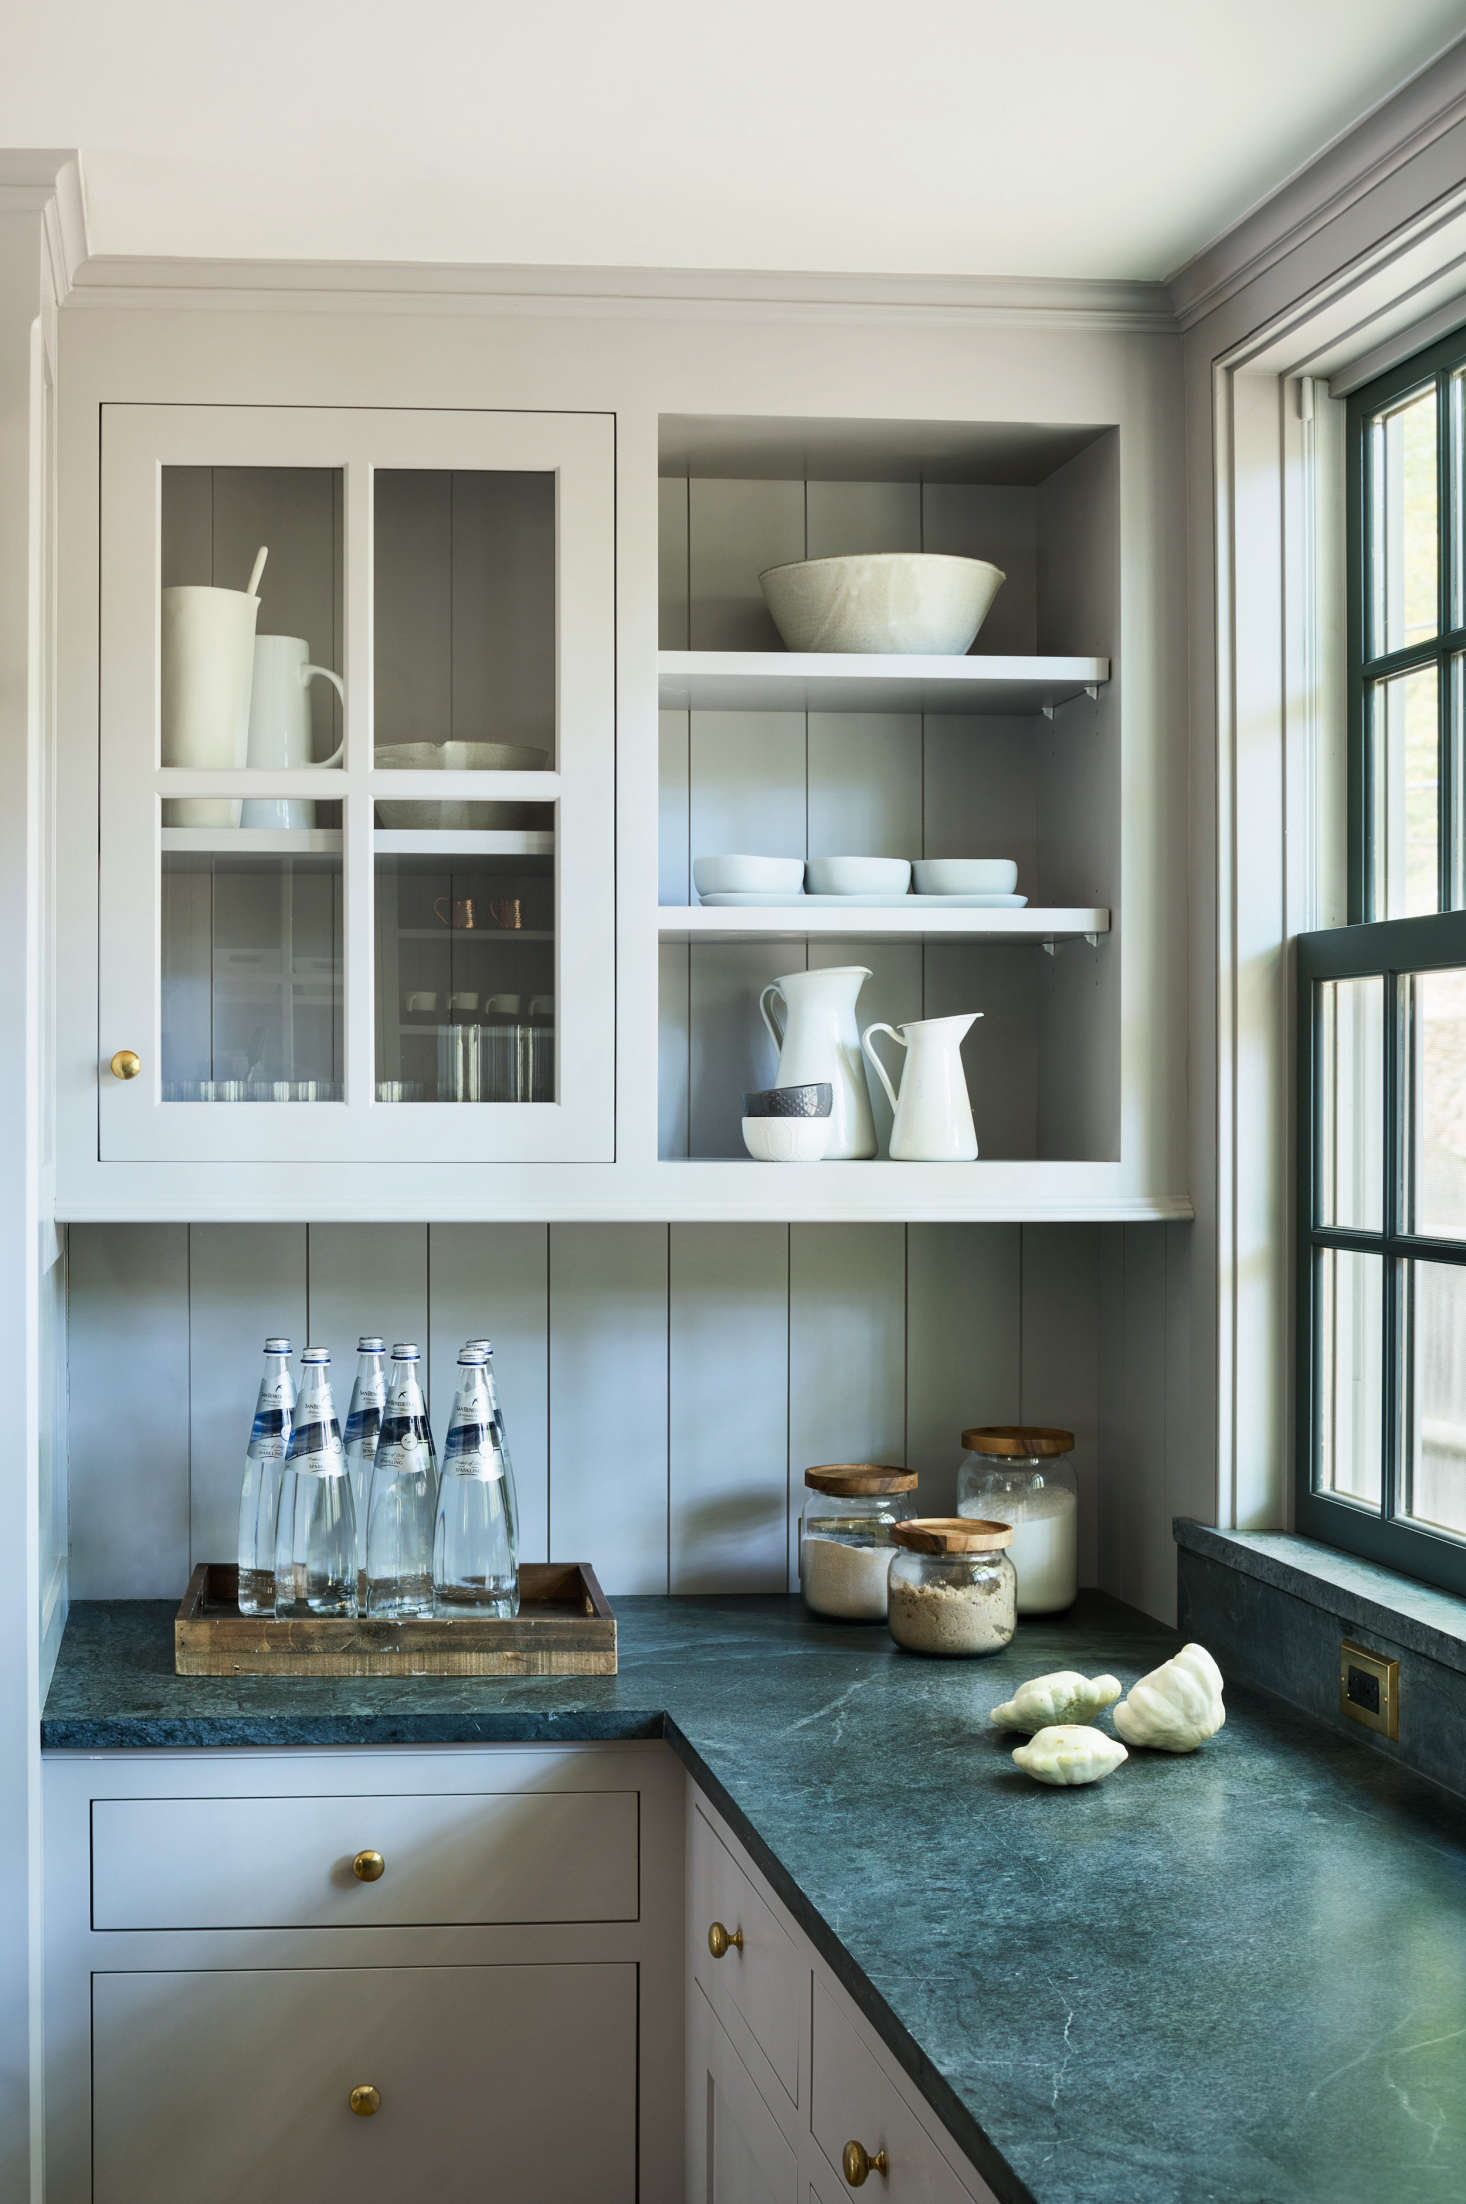 Remodeling 101: Five Questions to Ask When Choosing Kitchen ...